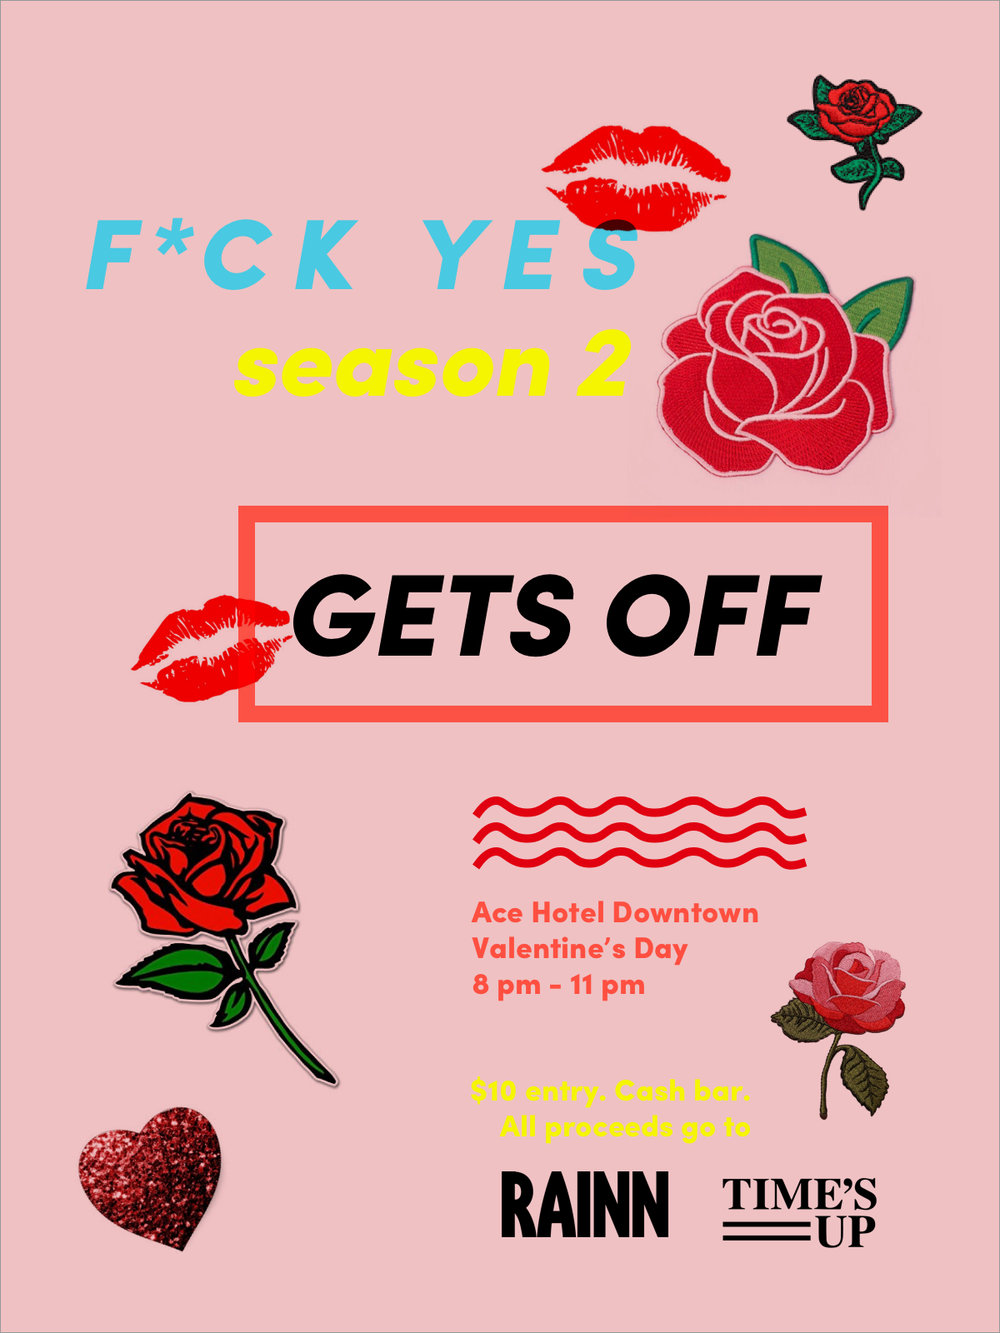 EVENT design - F*ck Yes recently premiered at the Ace Hotel in downtown Los Angeles to benefit RAINN (Rape, Abuse & Incest National Network) and the Time's Up movement.